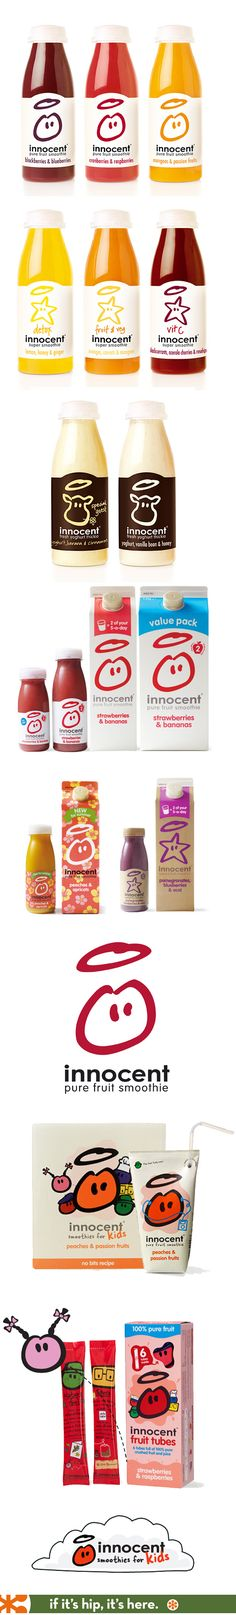 Innocent Brand drinks for Adults and Kids.